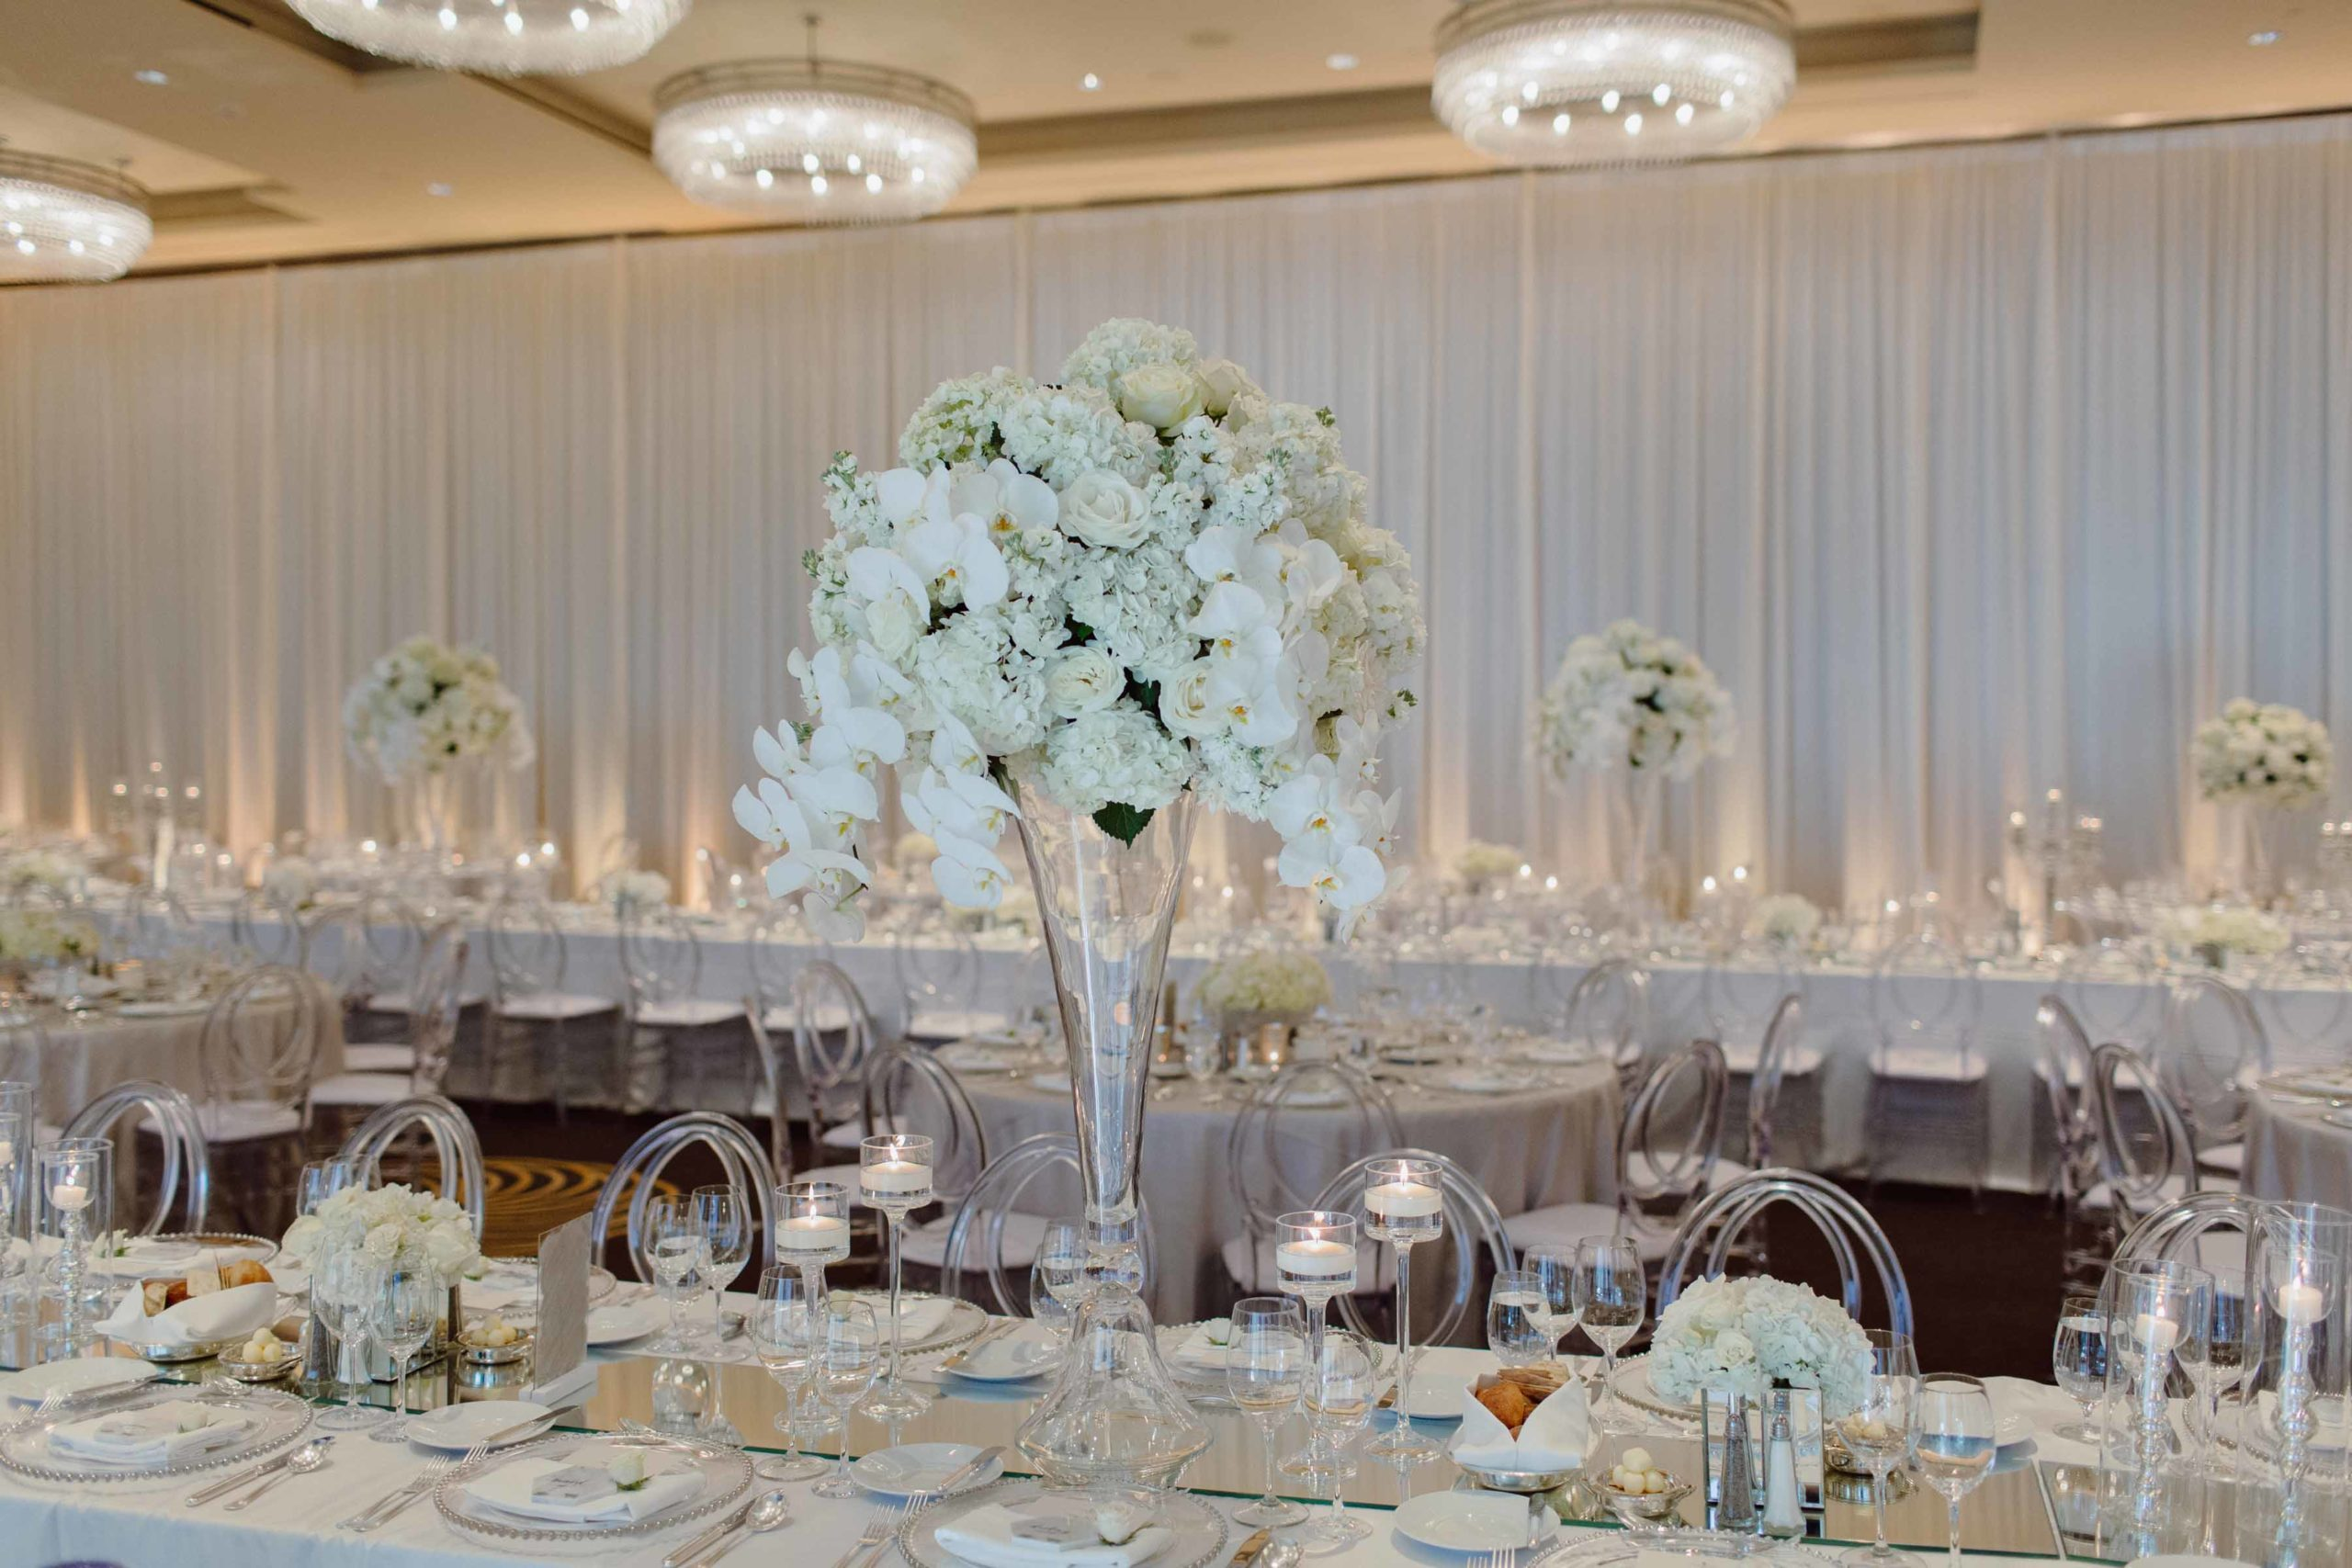 tall all white centerpeice on crystal vase with white phalenopsis orchids at wedding reception at four seasons seattle